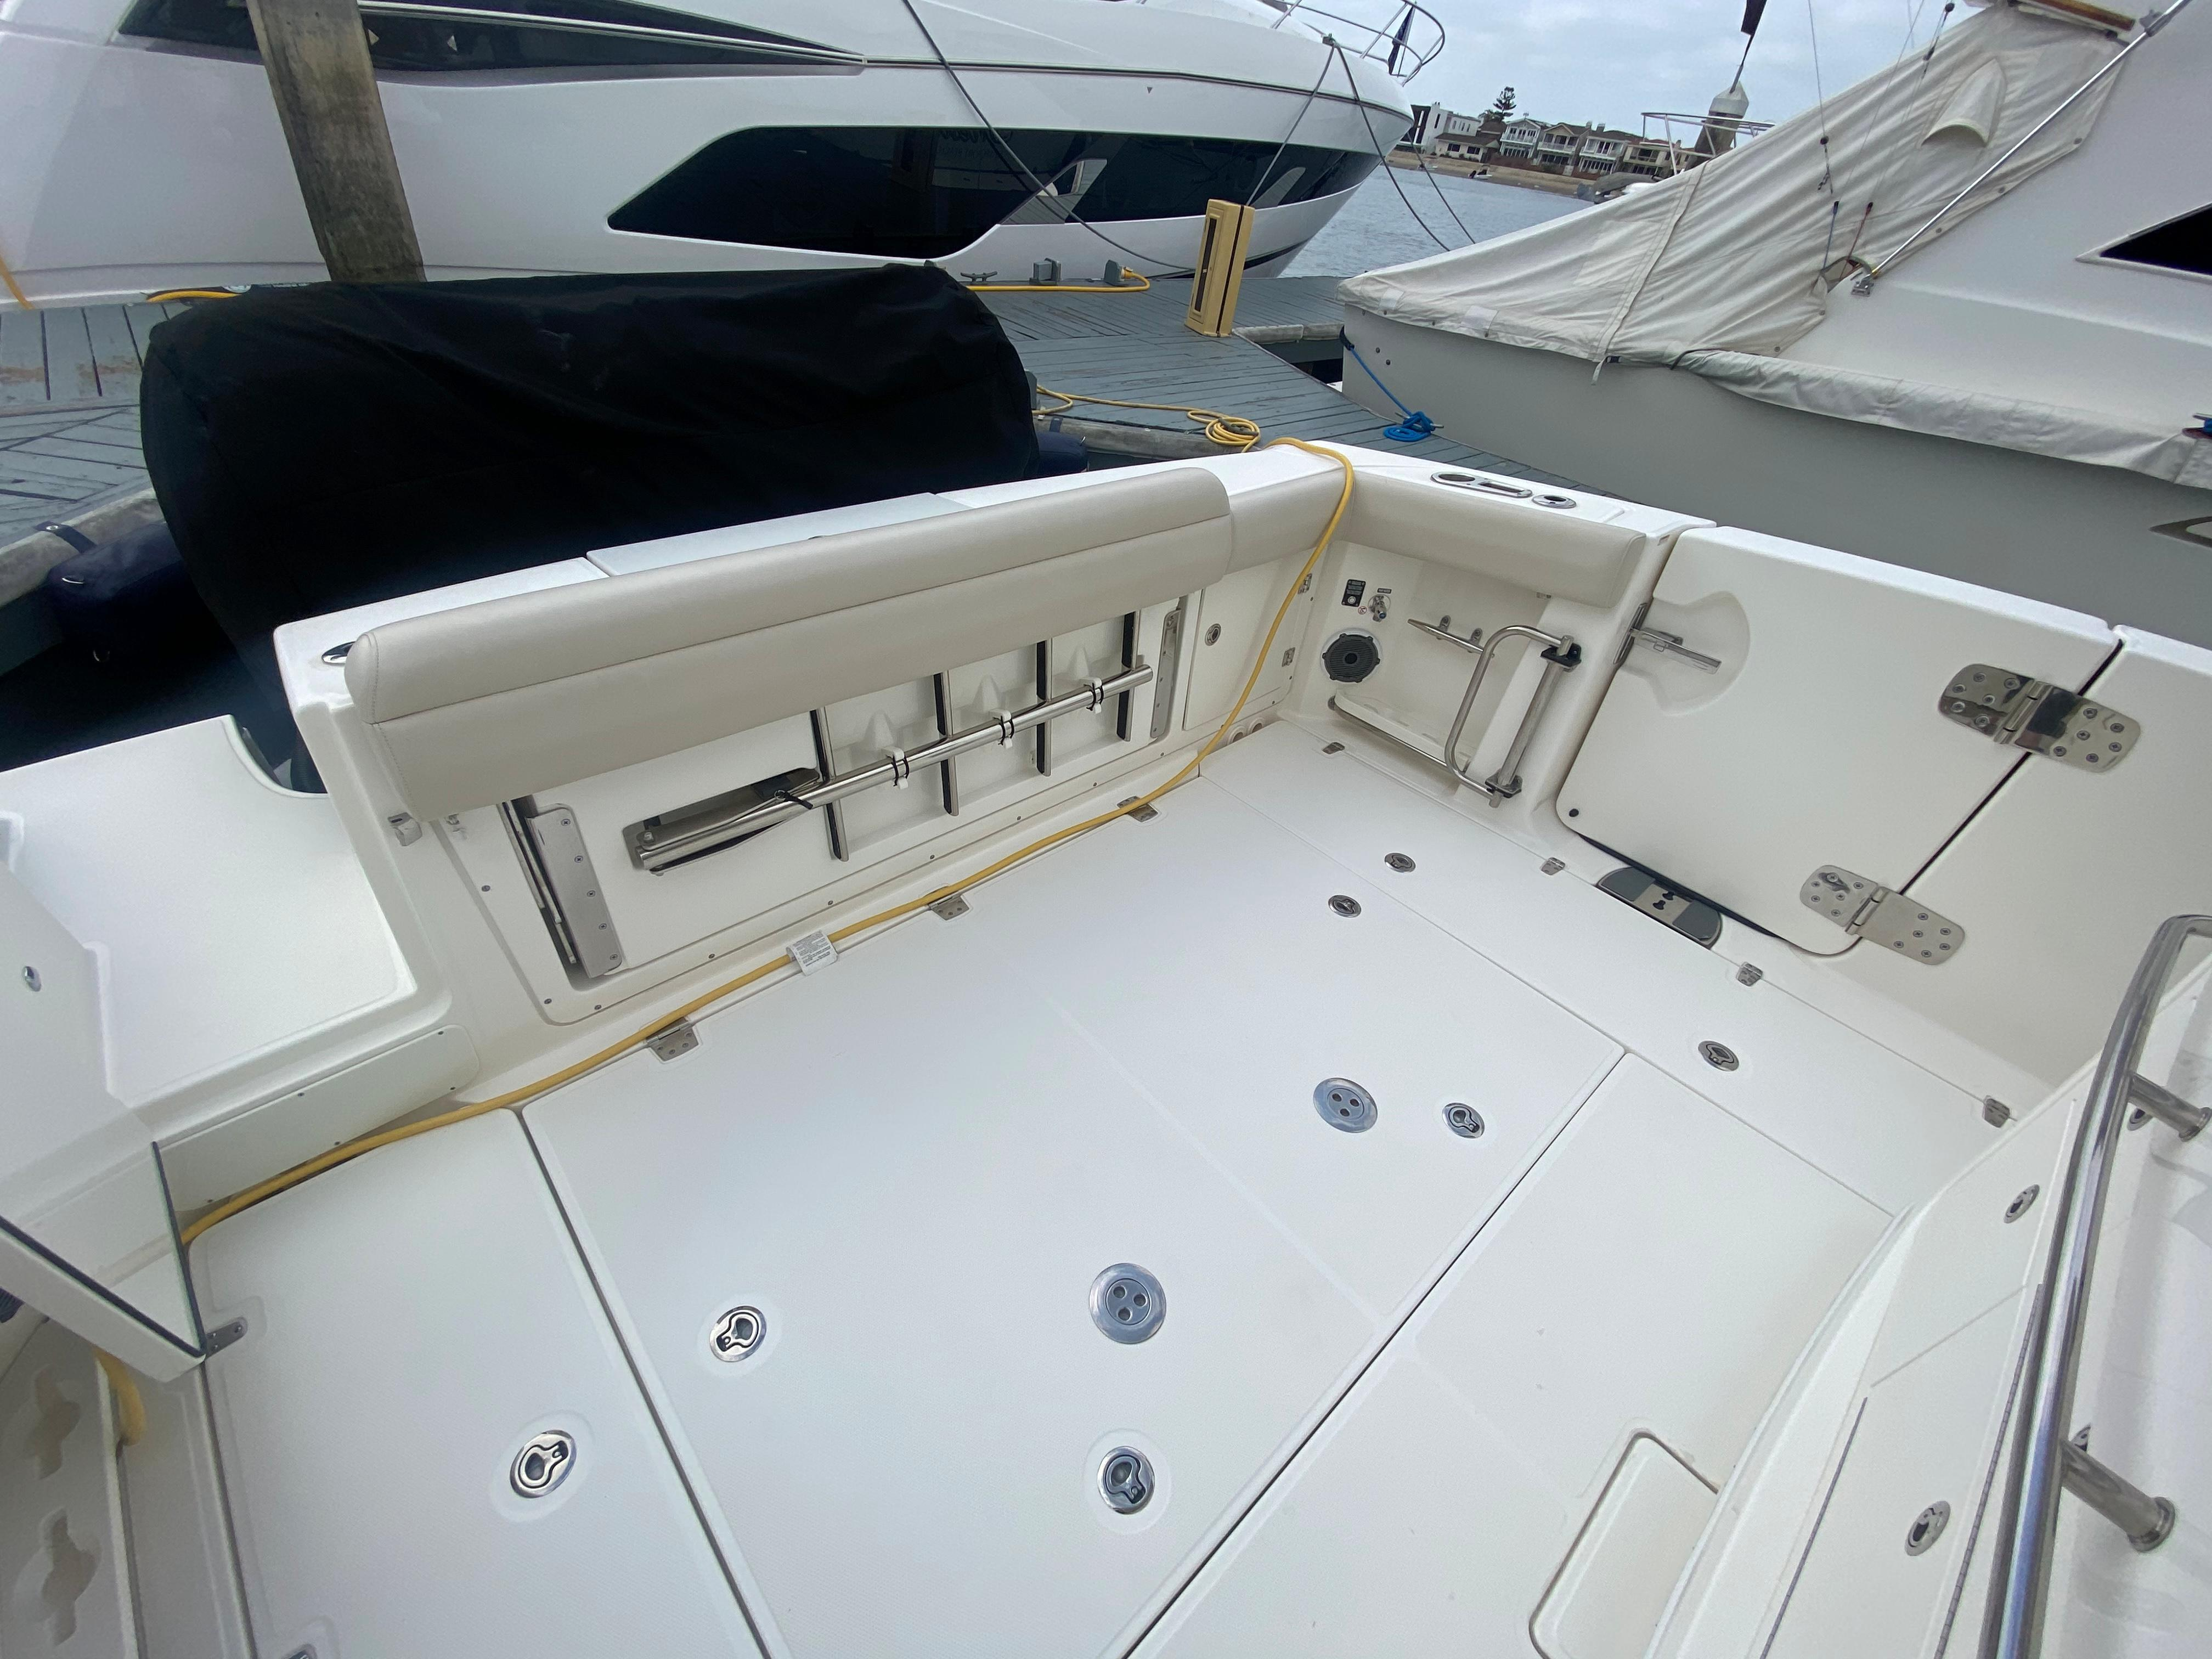 2019 Boston Whaler 380 Outrage #TB0264MB3 inventory image at Sun Country Coastal in Newport Beach